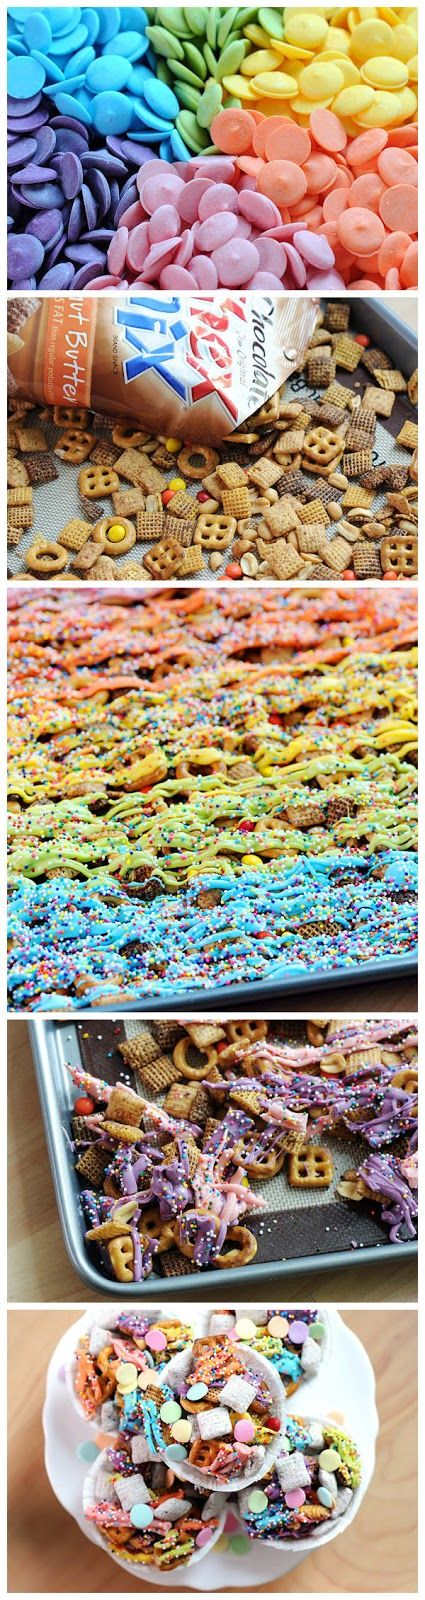 Rainbow Chex Mix is the perfect party treat for a kids' party. It's easy to make yet looks so pretty on the dessert table or in individual muffin cups. #chexmix #rainbow